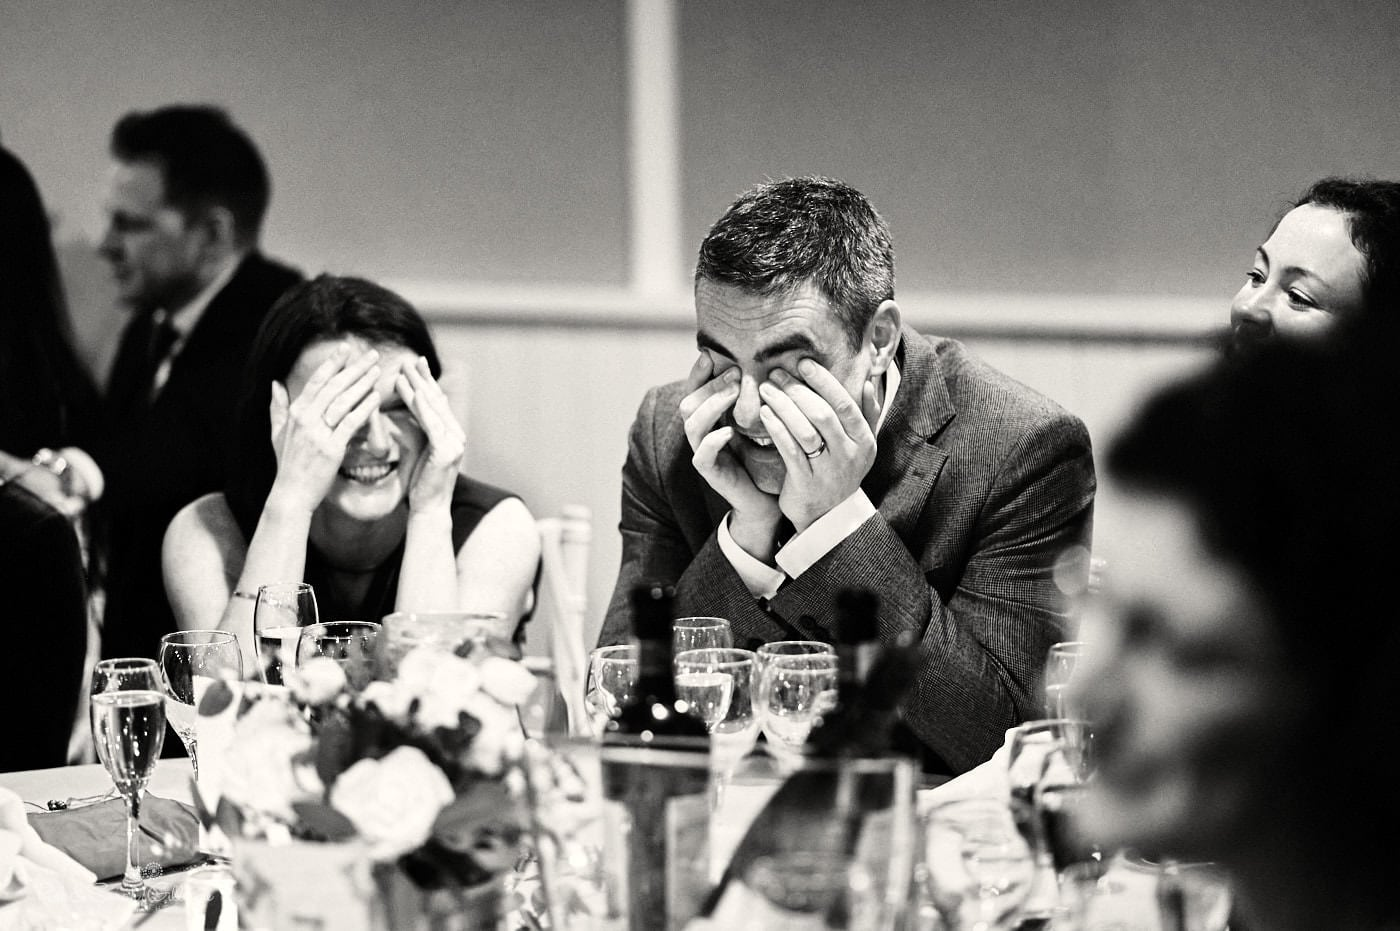 Wedding guests react to speeches